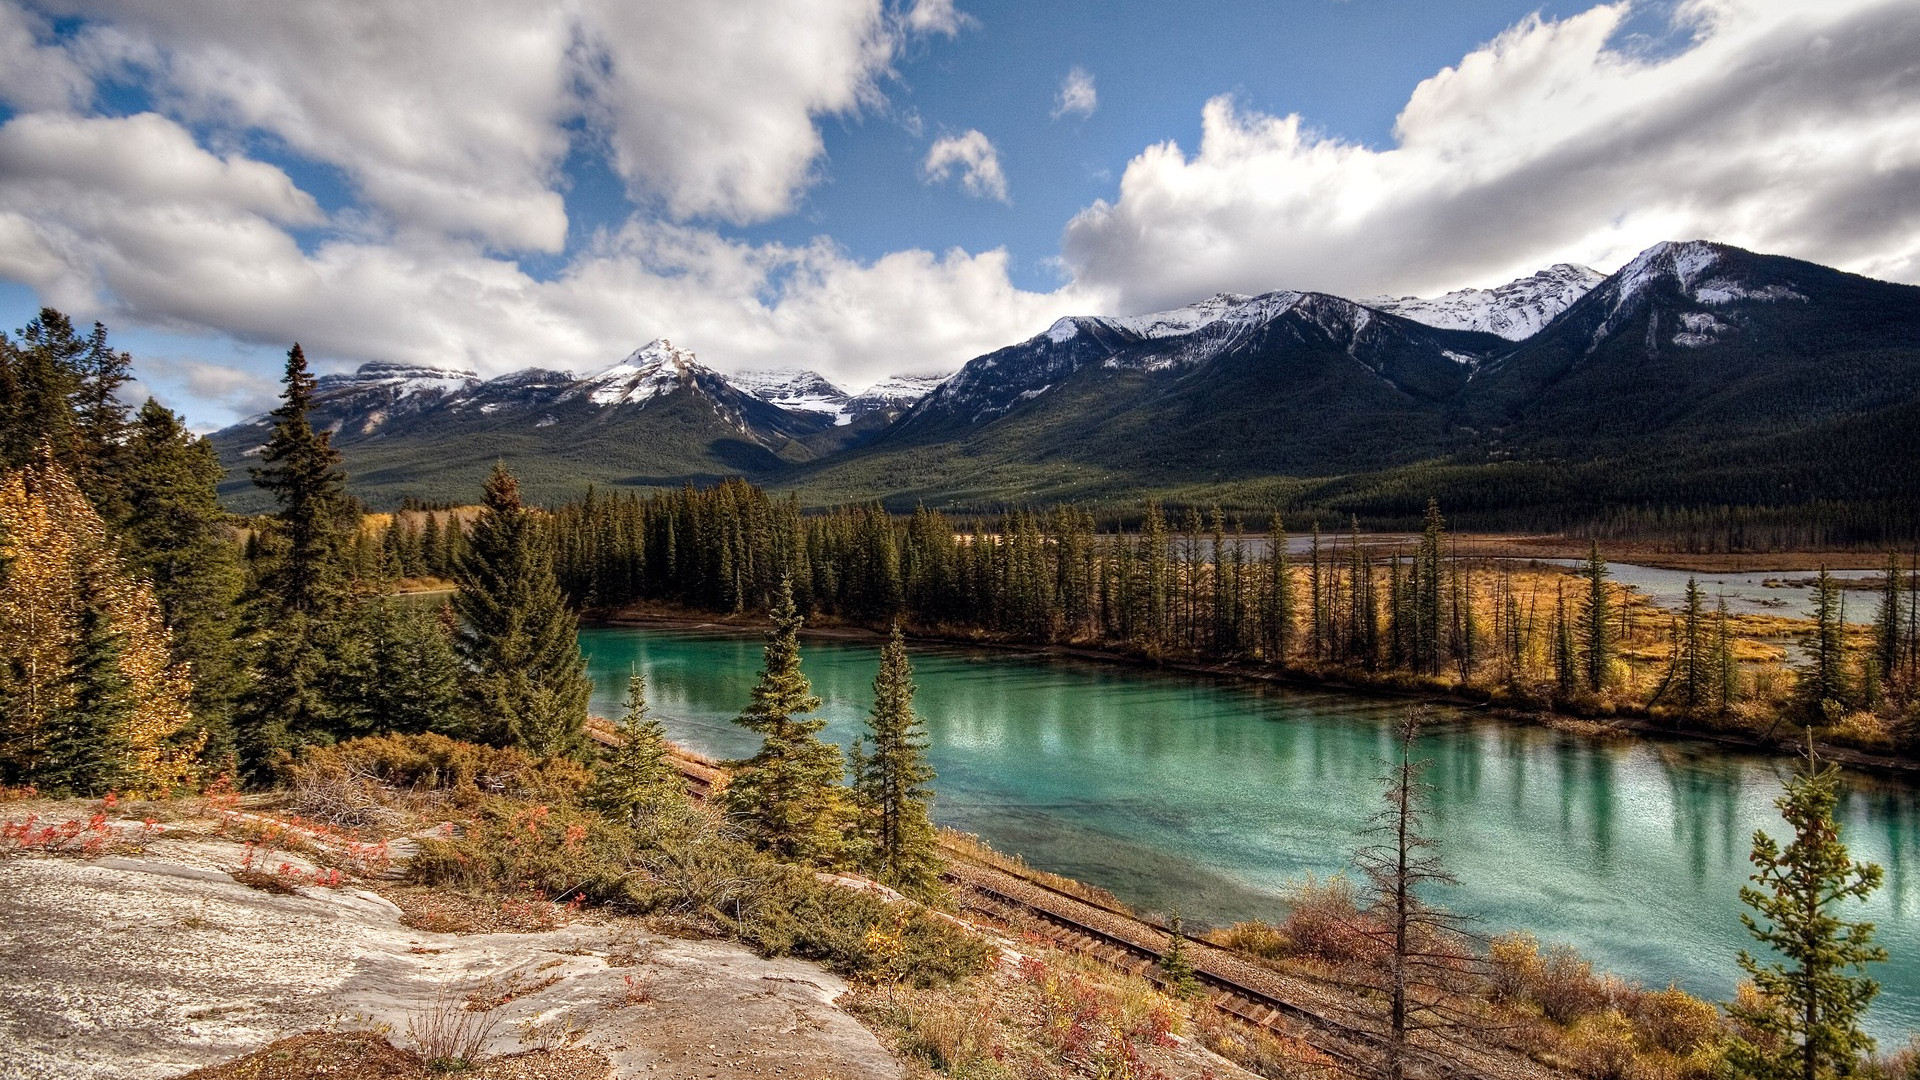 Download Banff National Park Canada wallpaper 1920x1080